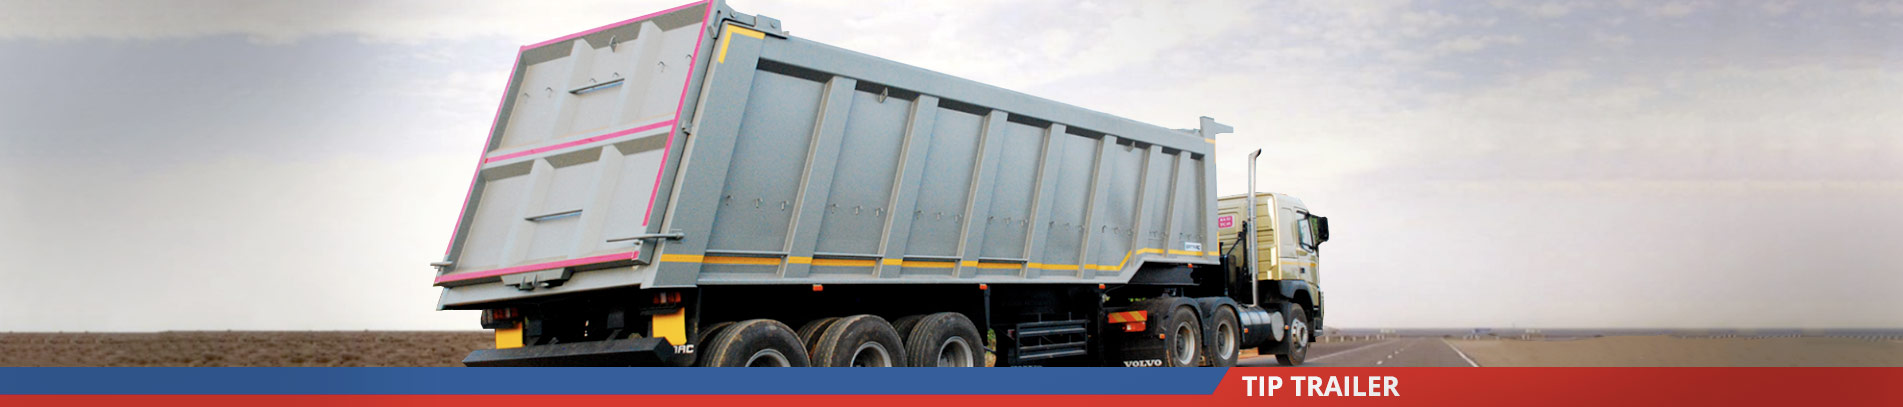 Tip Trailer Manufacturers in India